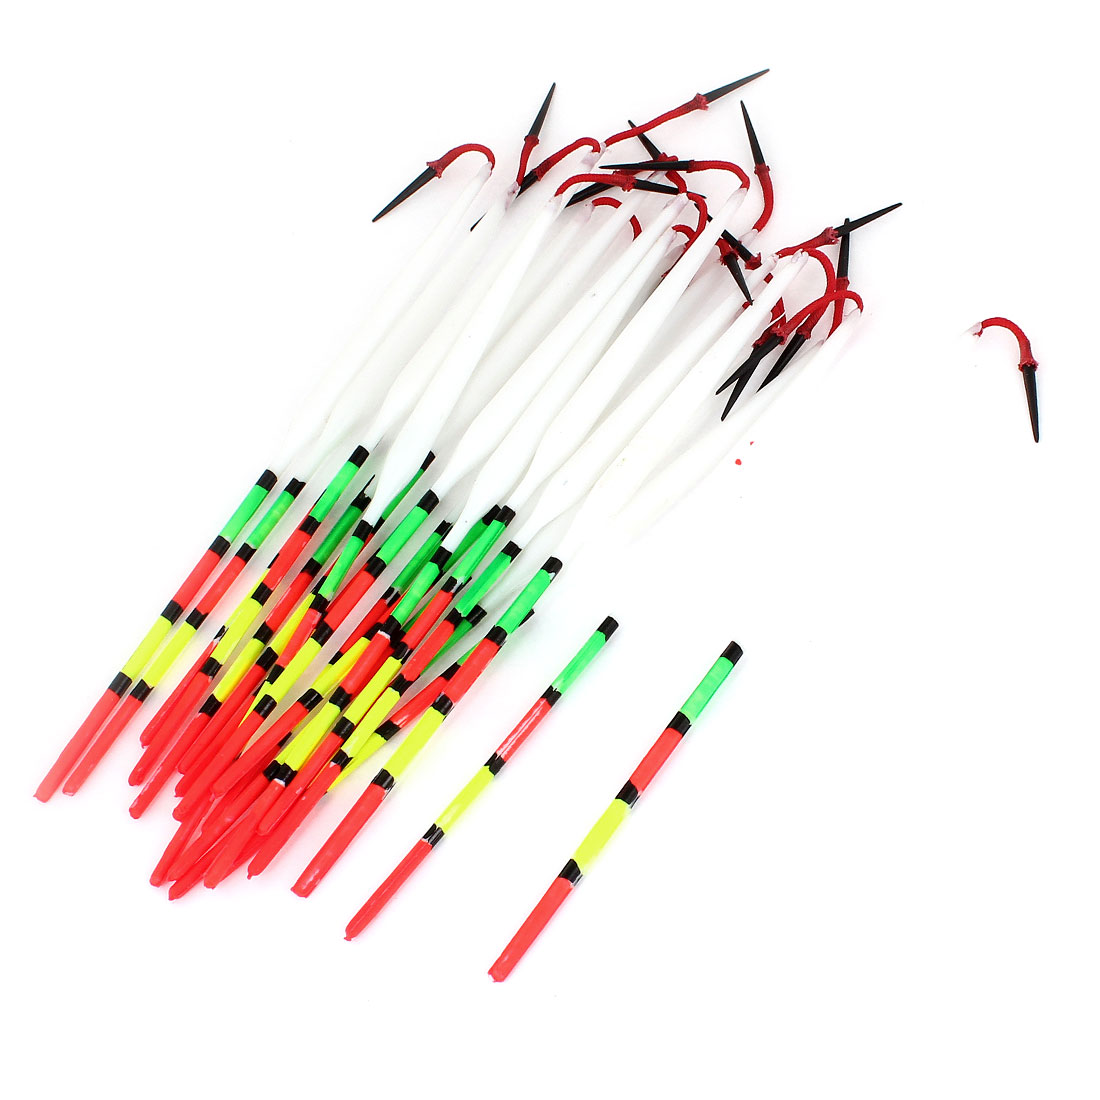 20pcs 17 cm Length Multicolor Fine Tip Plastic Fishing Float Wagglers Bobber